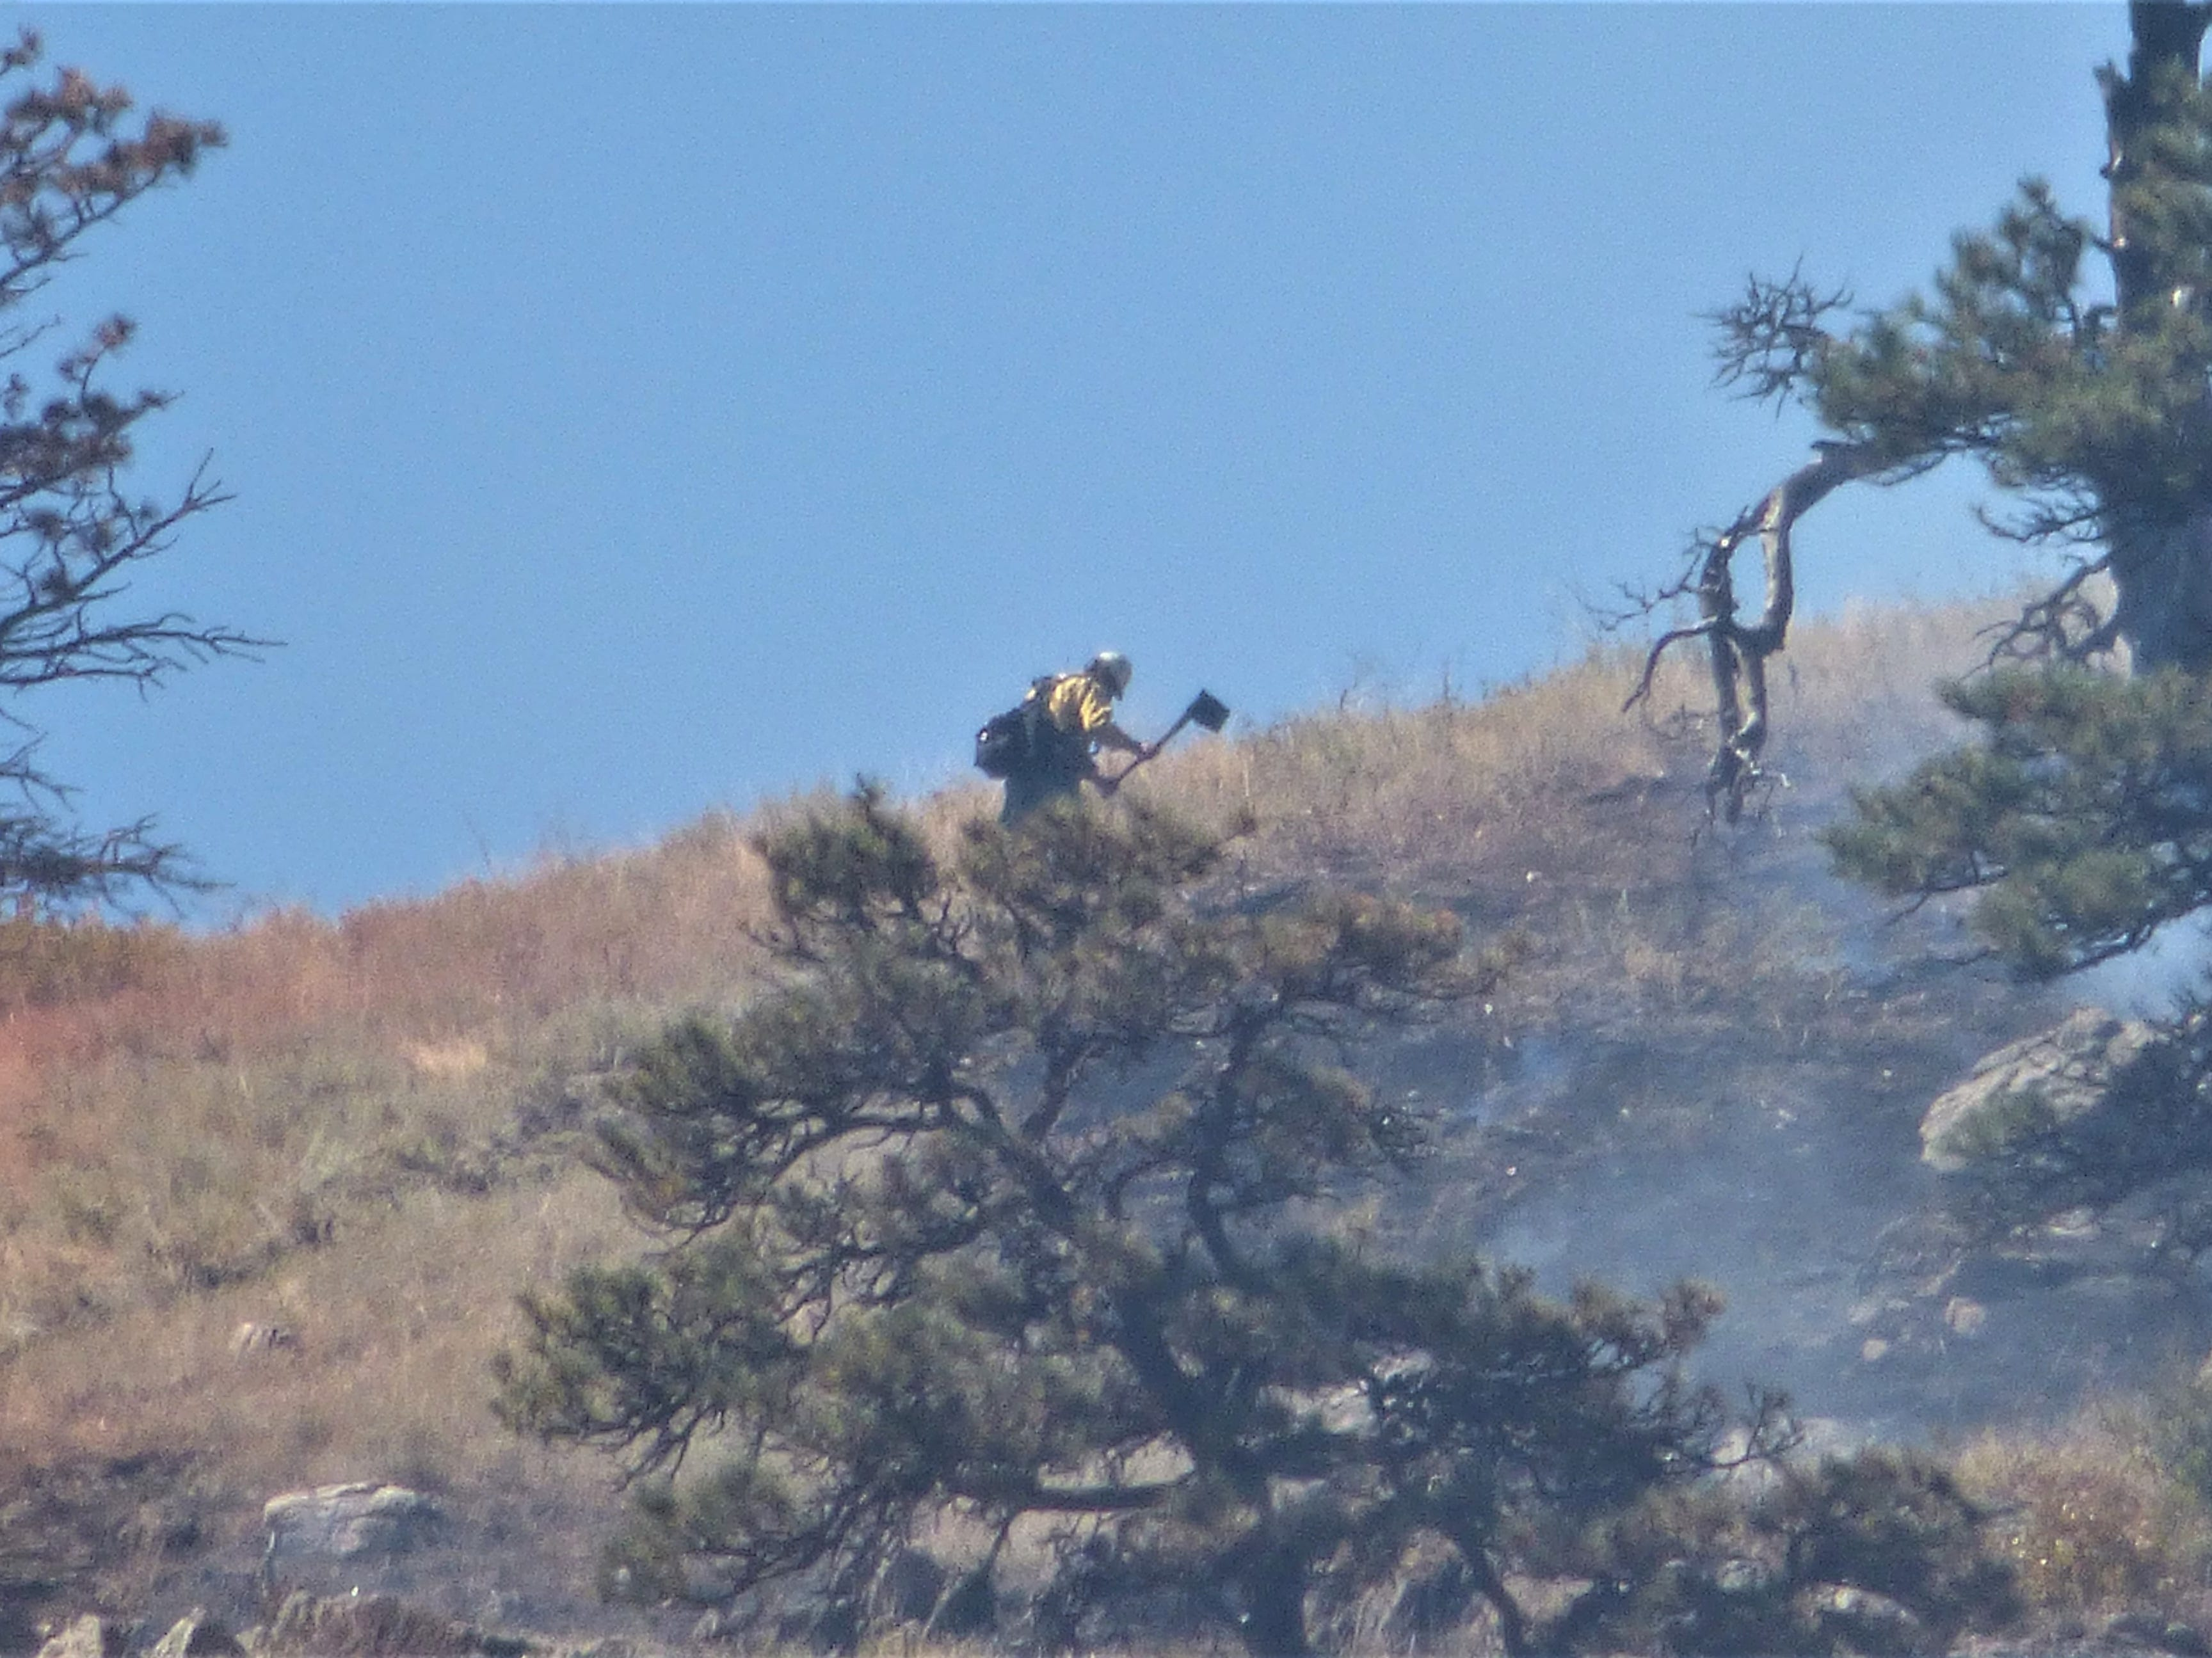 Reader Kristen Peterson, who lives near the Seaman Fire, provided this photo of a firefighter working the fire.